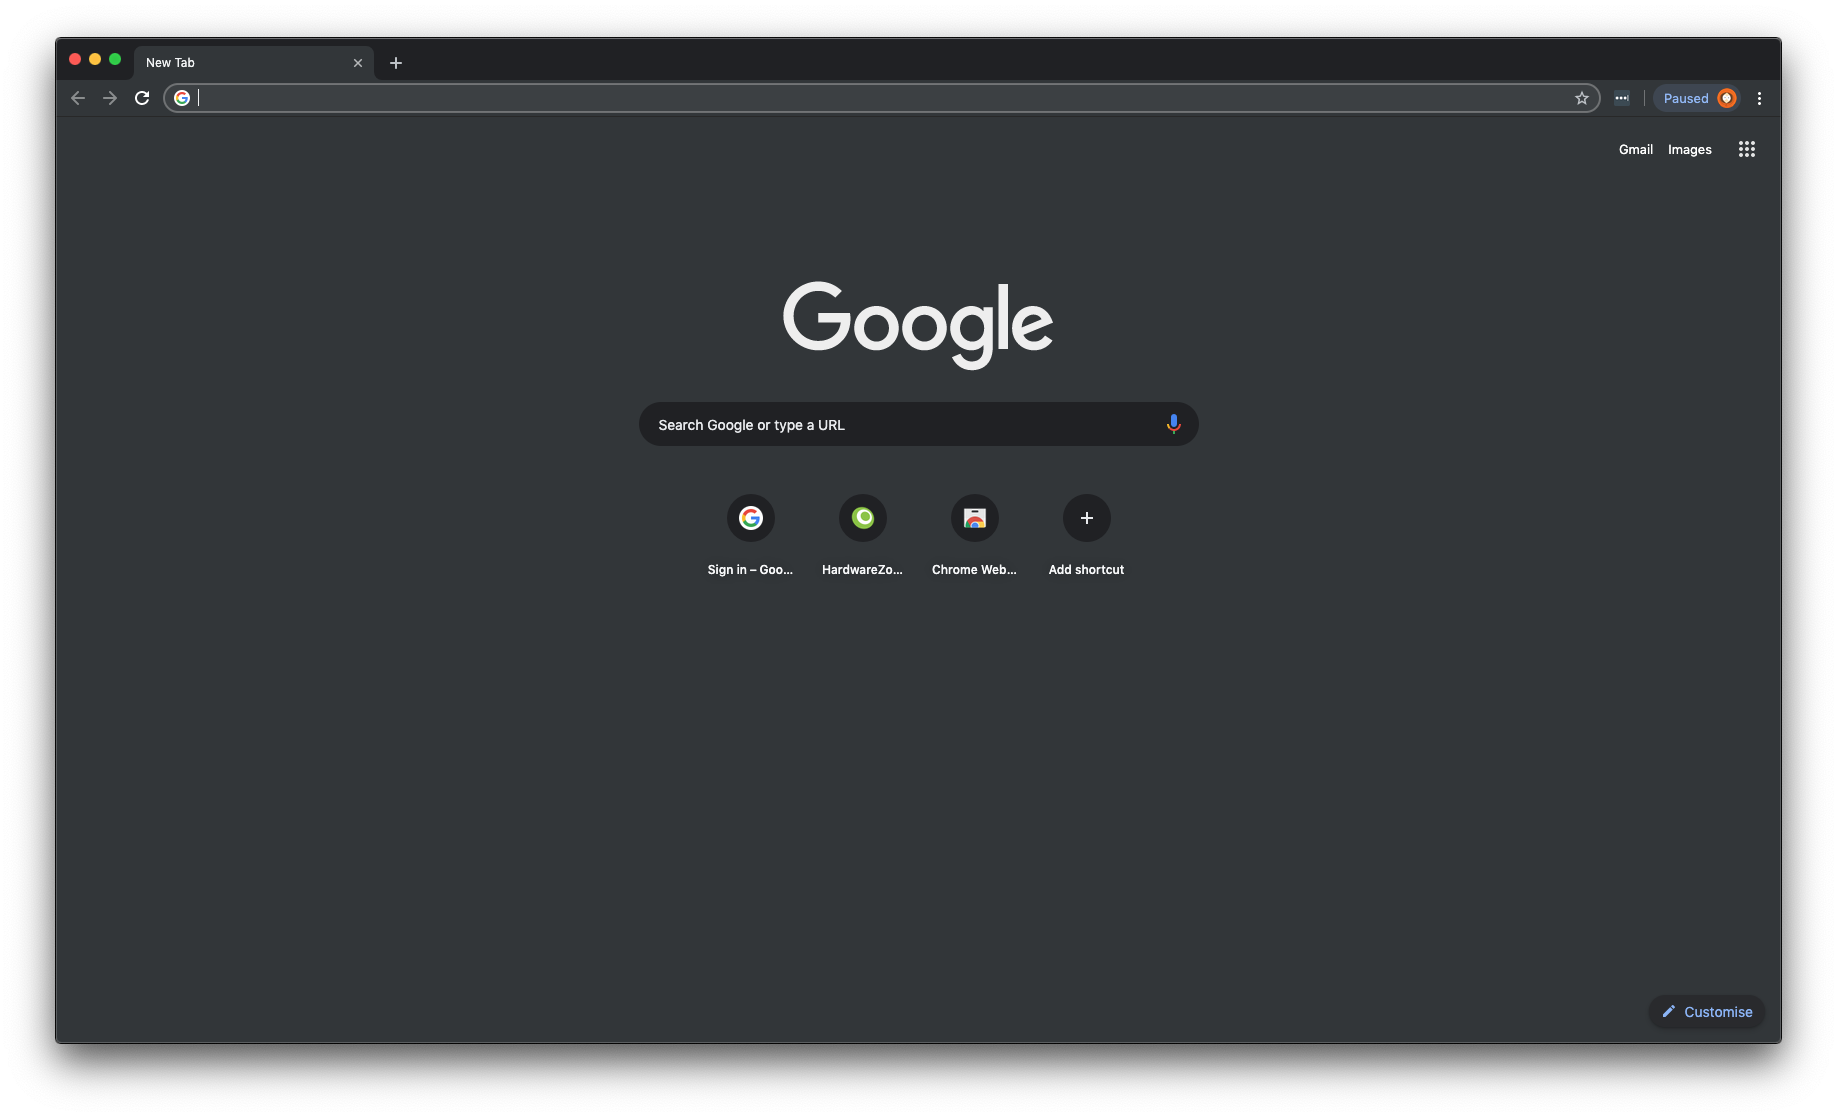 Chrome has a clean interface and looks modern, especially in Dark Mode on macOS.